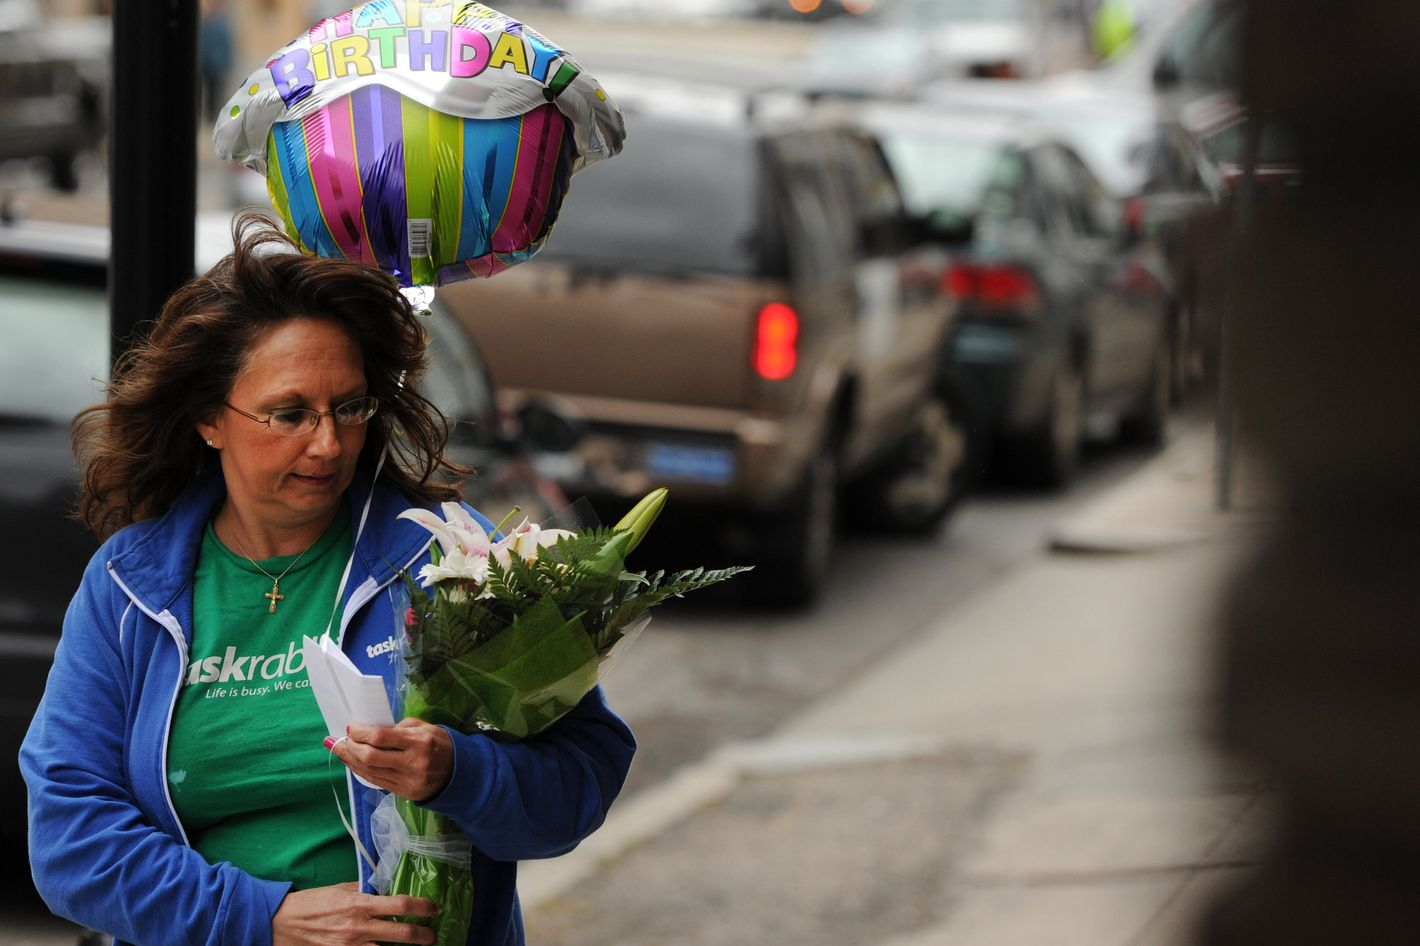 Diane Hohen, with TaskRabbit, delivers a bouquet of flowers in Boston on March 29, 2012. TaskRabbit is a task and errand service that allows people to hire others to do small jobs.